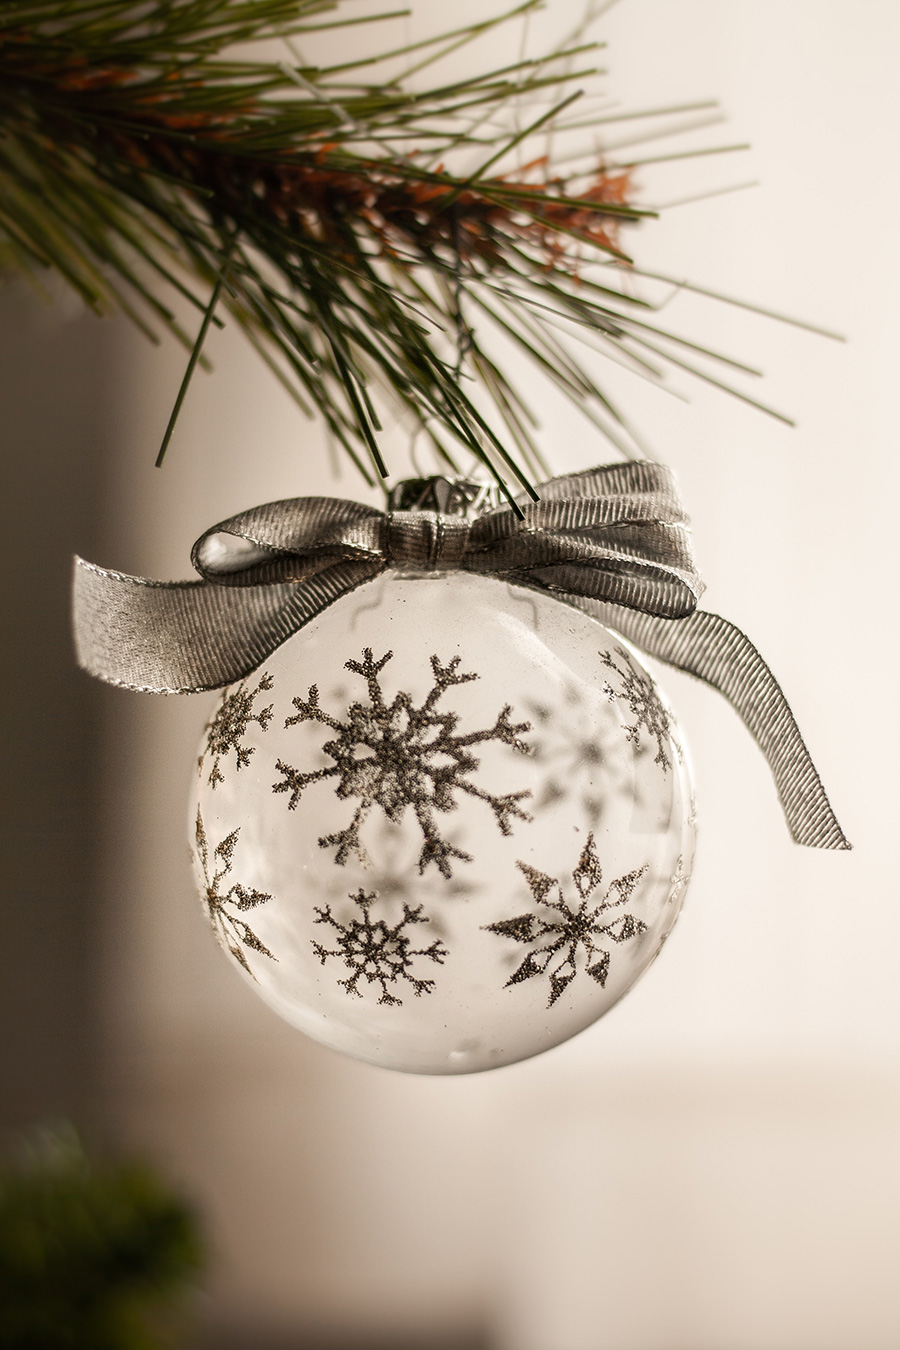 A different way to decorate your home for Christmas - Baubles